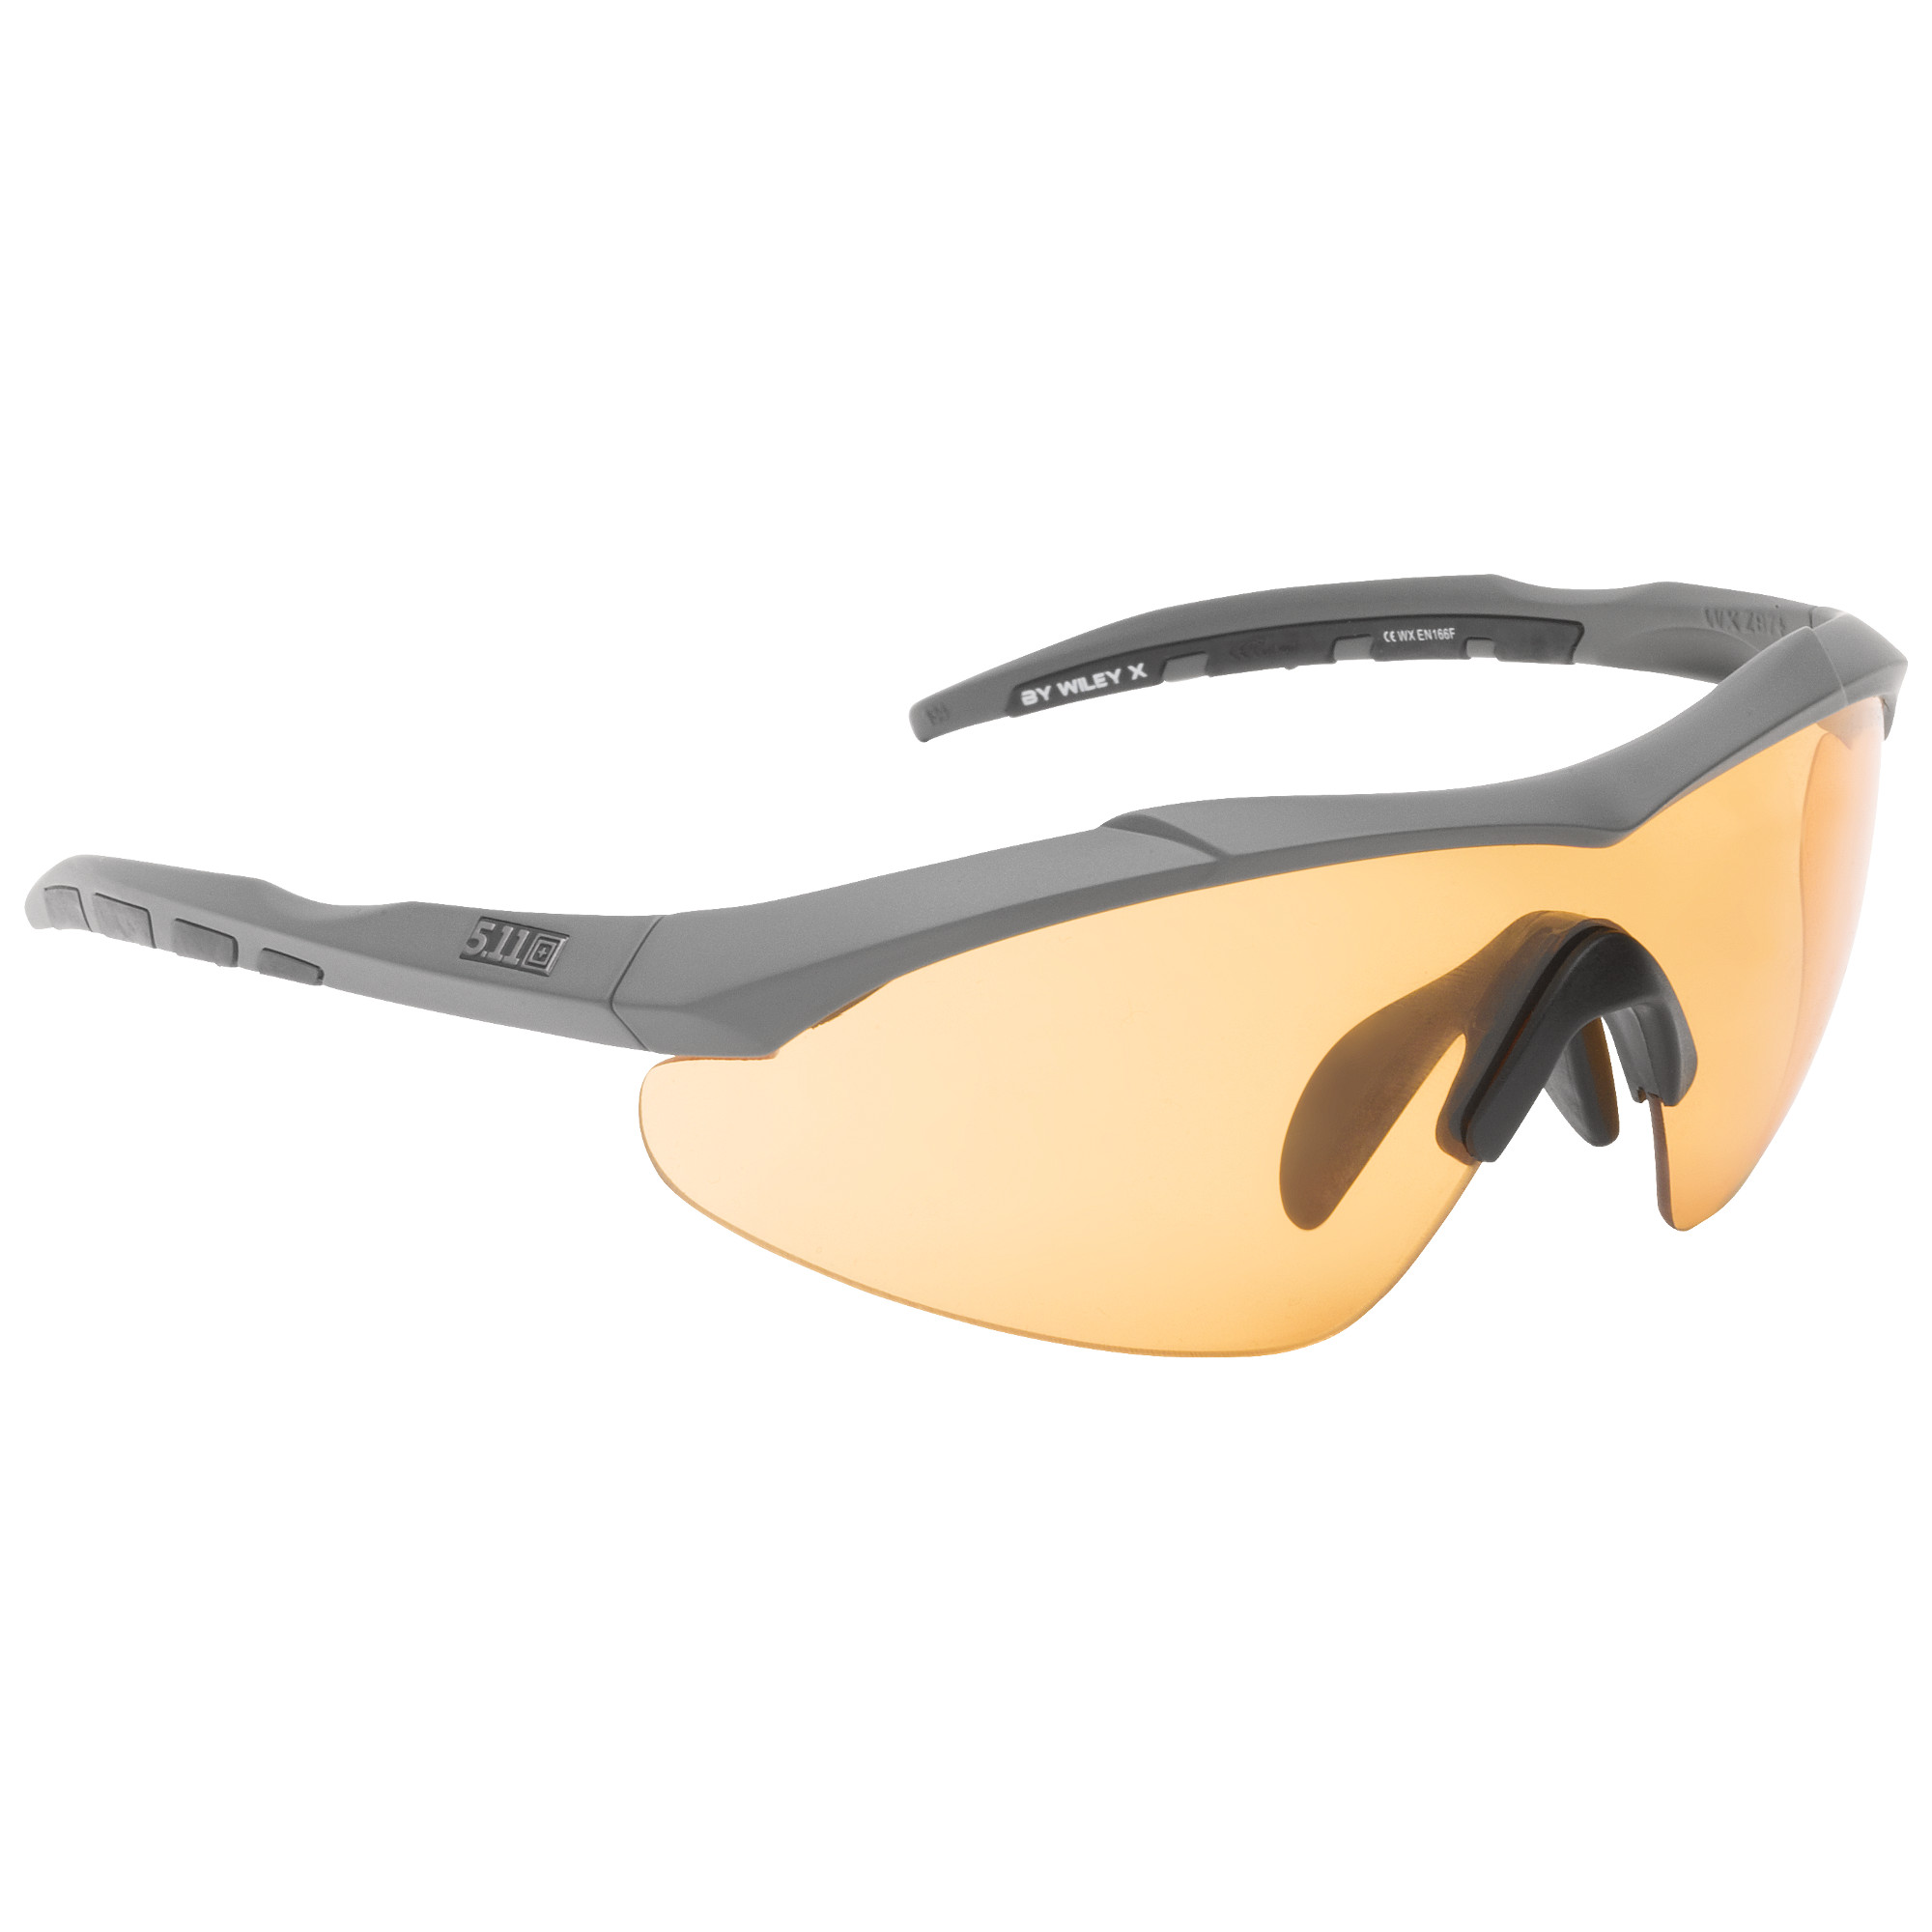 5.11 Aileron Shield™ from 5.11 Tactical (Gray)